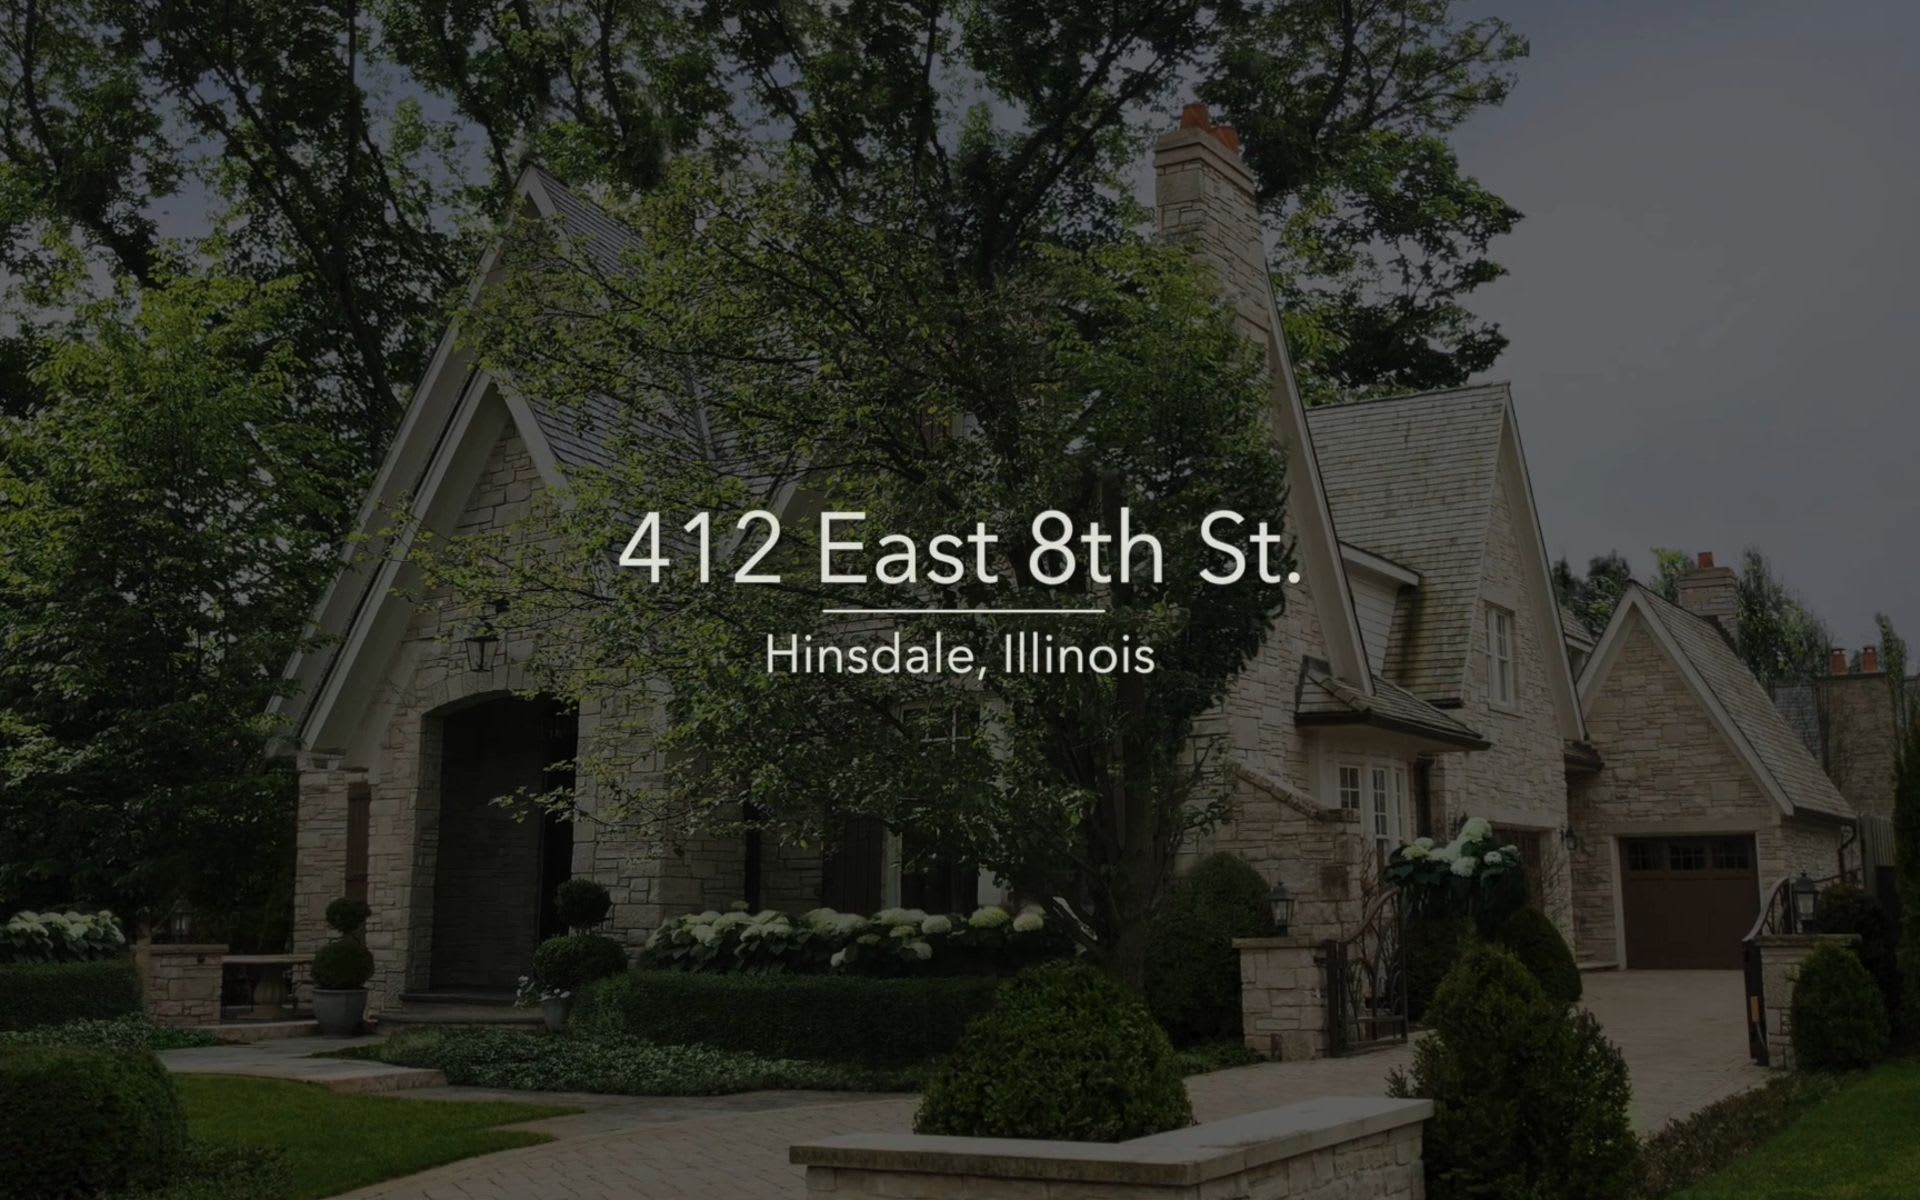 412 EAST 8TH, HINSDALE, IL DAWN MCKENNA GROUP video preview